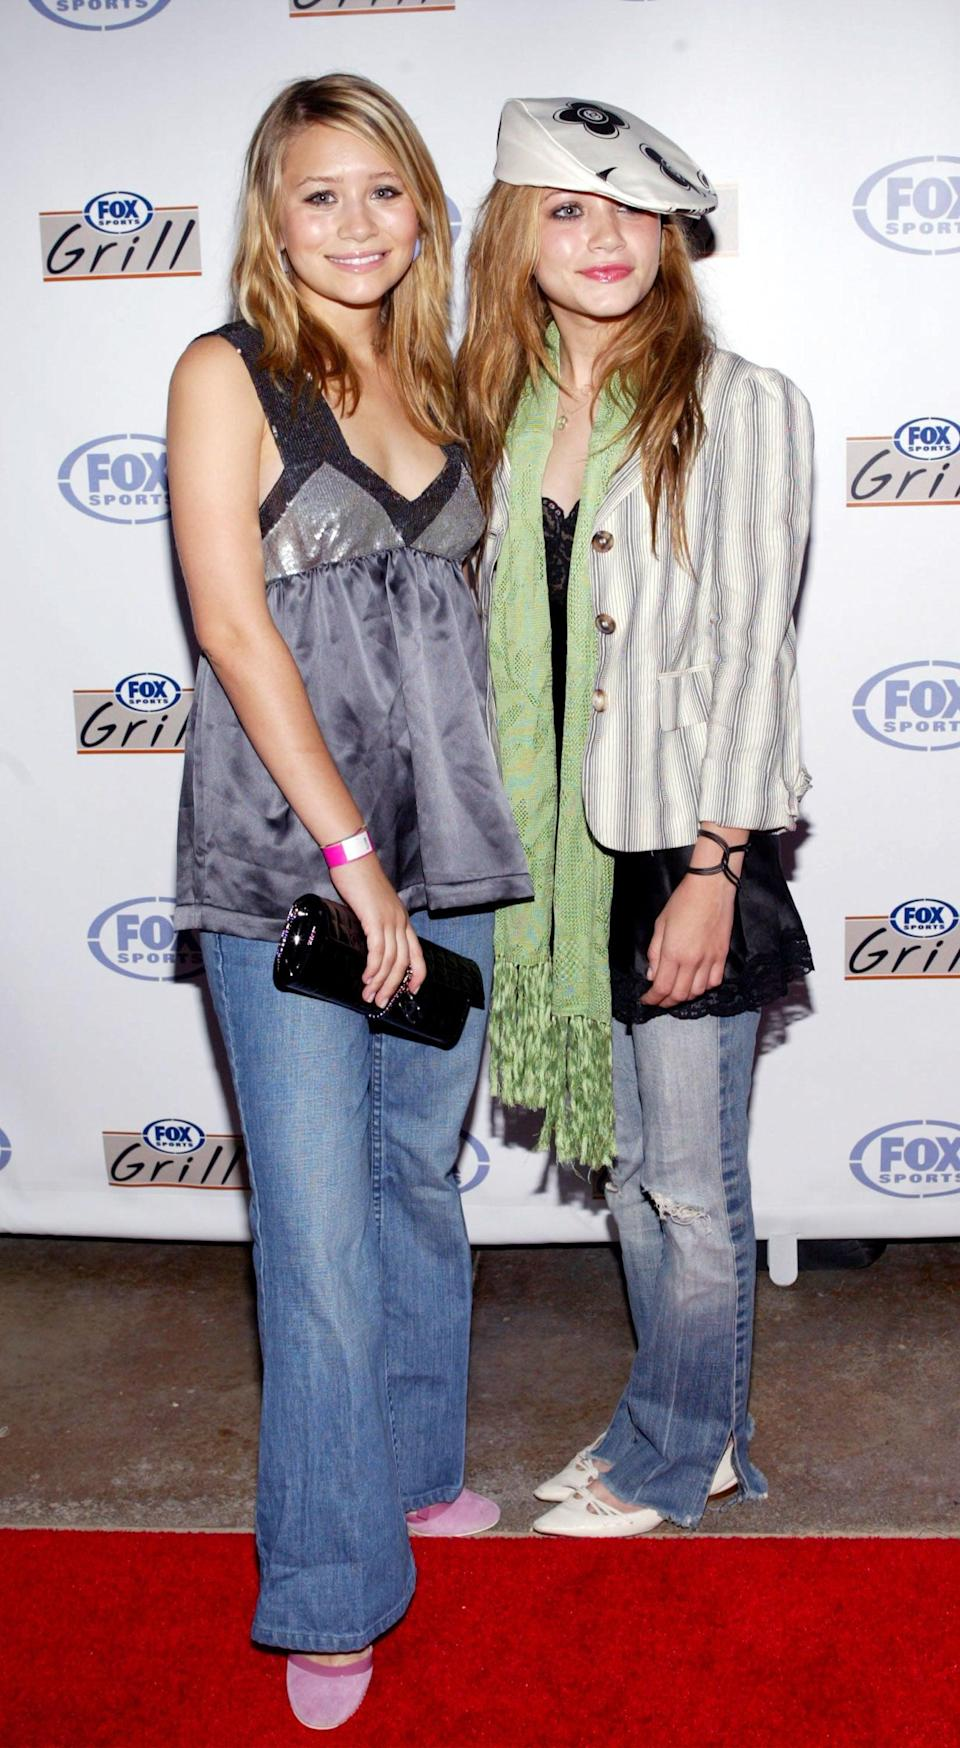 """<p>Sure, you might still be in denial, but the fact is, flare jeans are in again. We all became obsessed with them while watching <a href=""""https://www.popsugar.com/fashion/Mary-Kate-Ashley-Olsen-Style-Evolution-46225090"""" class=""""link rapid-noclick-resp"""" rel=""""nofollow noopener"""" target=""""_blank"""" data-ylk=""""slk:Mary-Kate and Ashley Olsen"""">Mary-Kate and Ashley Olsen</a> in <strong>Holiday in the Sun</strong>, and many stars like <a class=""""link rapid-noclick-resp"""" href=""""https://www.popsugar.com/Victoria-Beckham"""" rel=""""nofollow noopener"""" target=""""_blank"""" data-ylk=""""slk:Victoria Beckham"""">Victoria Beckham</a> and Gigi Hadid have already fully embraced this resurgence - so now might be a good time to <a href=""""https://www.popsugar.com/buy?url=https%3A%2F%2Fwww.kohls.com%2Fproduct%2Fprd-3827297%2Fwomens-popsugar-high-waisted-kick-flare-corduroy-pants.jsp&p_name=get%20yourself%20a%20new%20pair&retailer=kohls.com&evar1=fab%3Aus&evar9=46439730&evar98=https%3A%2F%2Fwww.popsugar.com%2Ffashion%2Fphoto-gallery%2F46439730%2Fimage%2F46450289%2FMary-Kate-Ashley-Olsen-Flare-Jeans&list1=mary-kate%20olsen%2Cashley%20olsen%2Ctrends%2Ccelebrity%20style%2Cnostalgia&prop13=api&pdata=1"""" rel=""""nofollow noopener"""" class=""""link rapid-noclick-resp"""" target=""""_blank"""" data-ylk=""""slk:get yourself a new pair"""">get yourself a new pair</a>.</p>"""